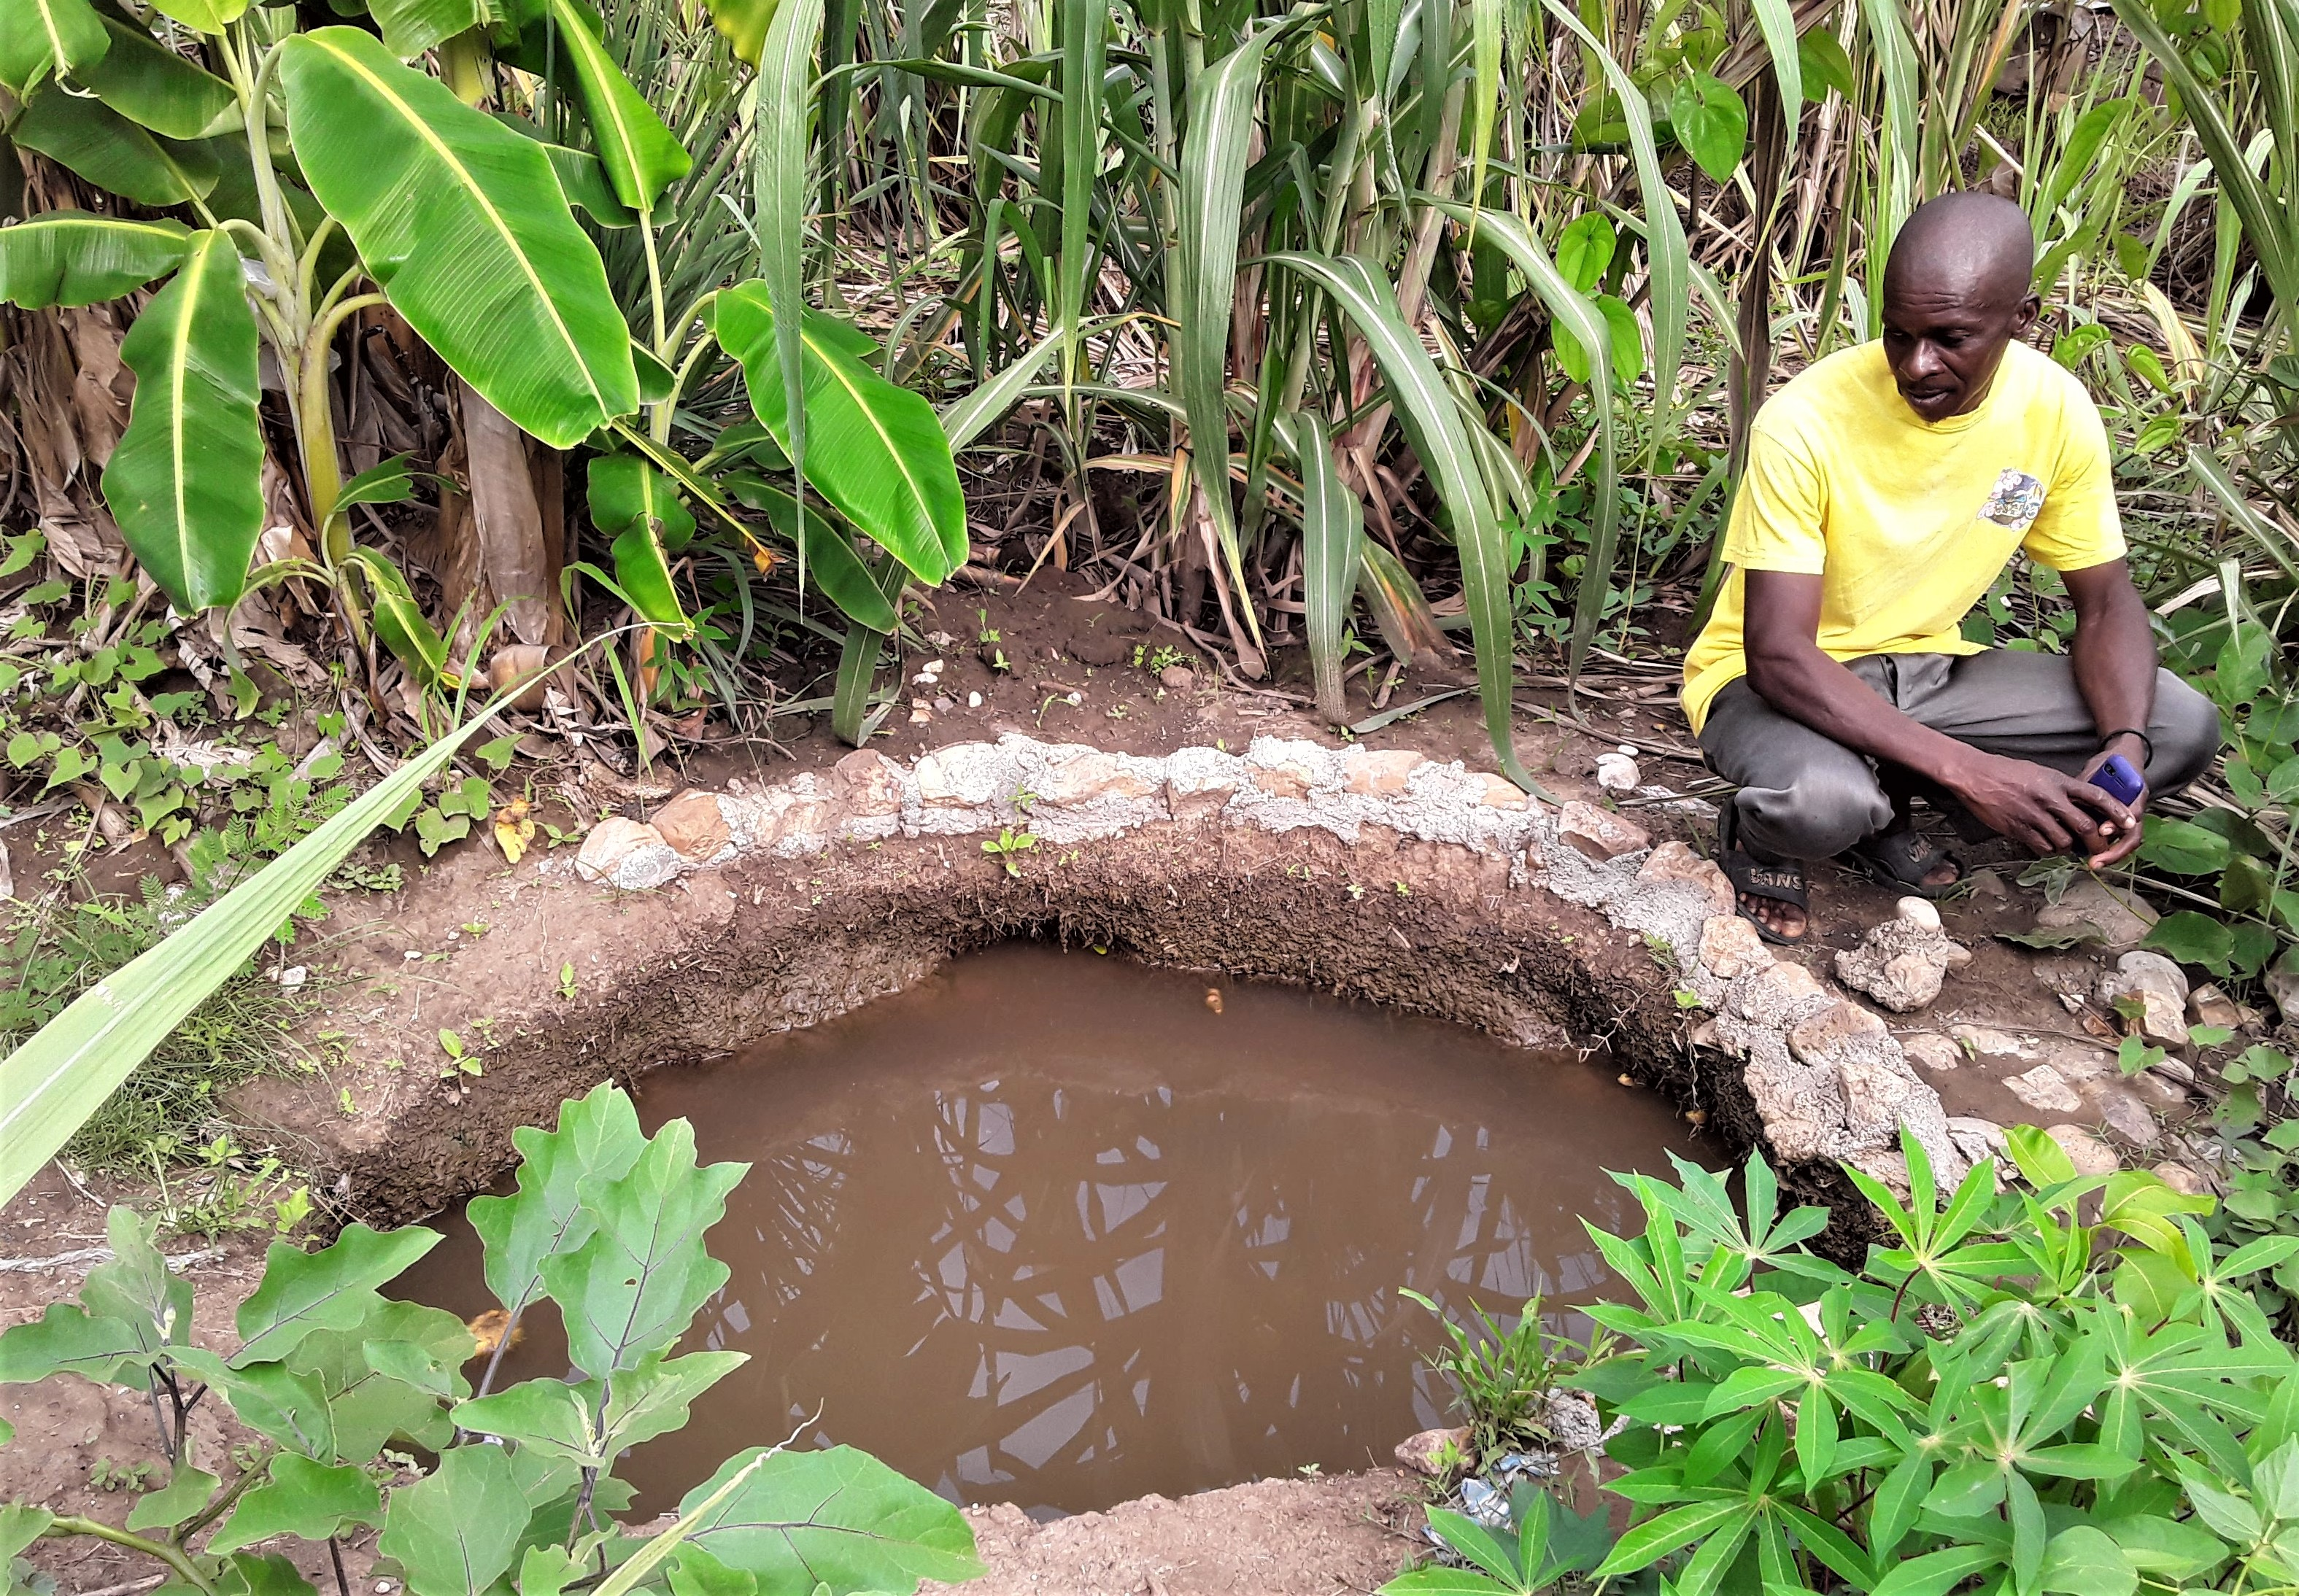 Eco-village resident from Village 3 showing Eric, Herve and me his fish pond in the middle of his vegetable garden plot by his house.